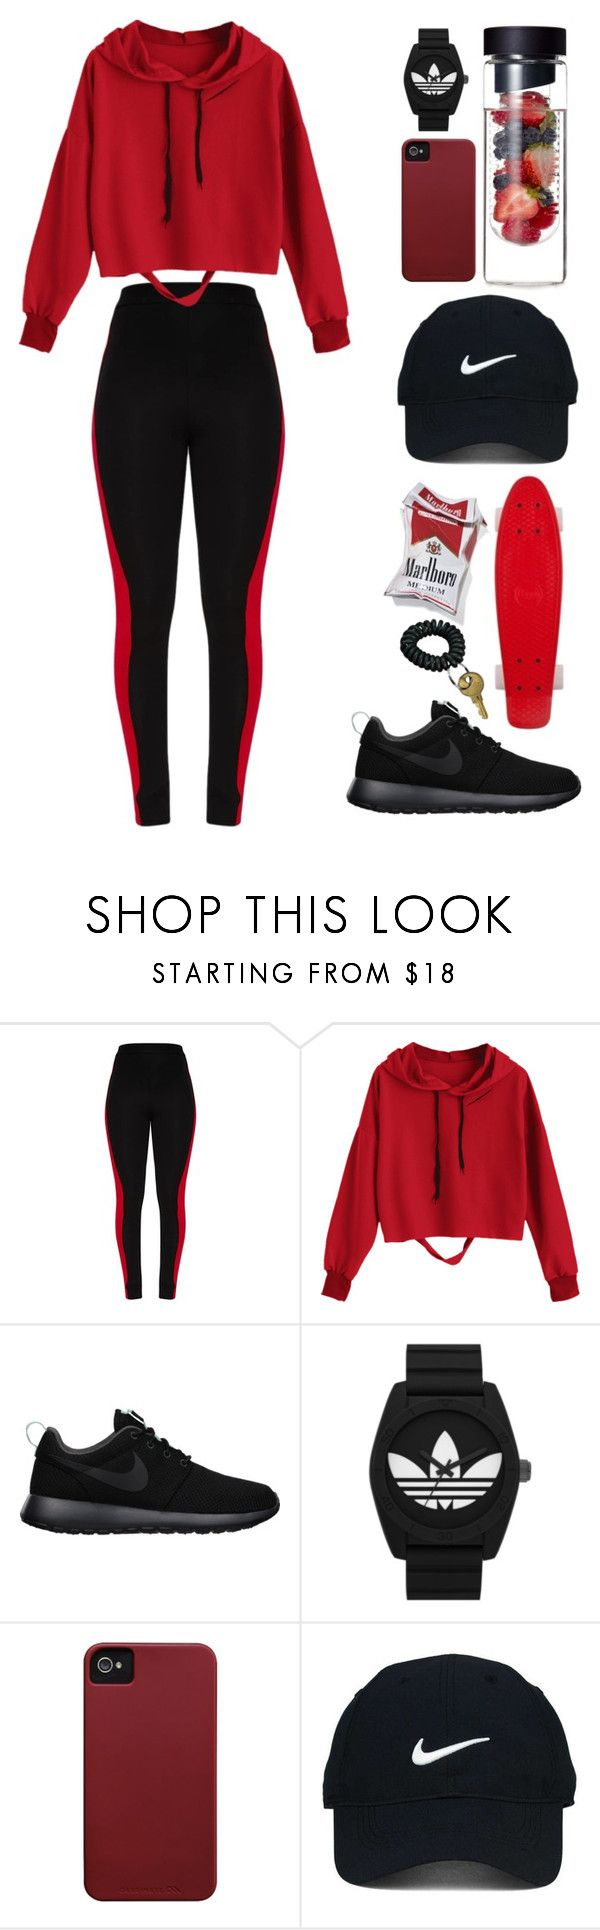 """Untitled #153"" by nglmfrryln ❤ liked on Polyvore featuring NIKE, adidas Originals, Case-Mate and Nike Golf"